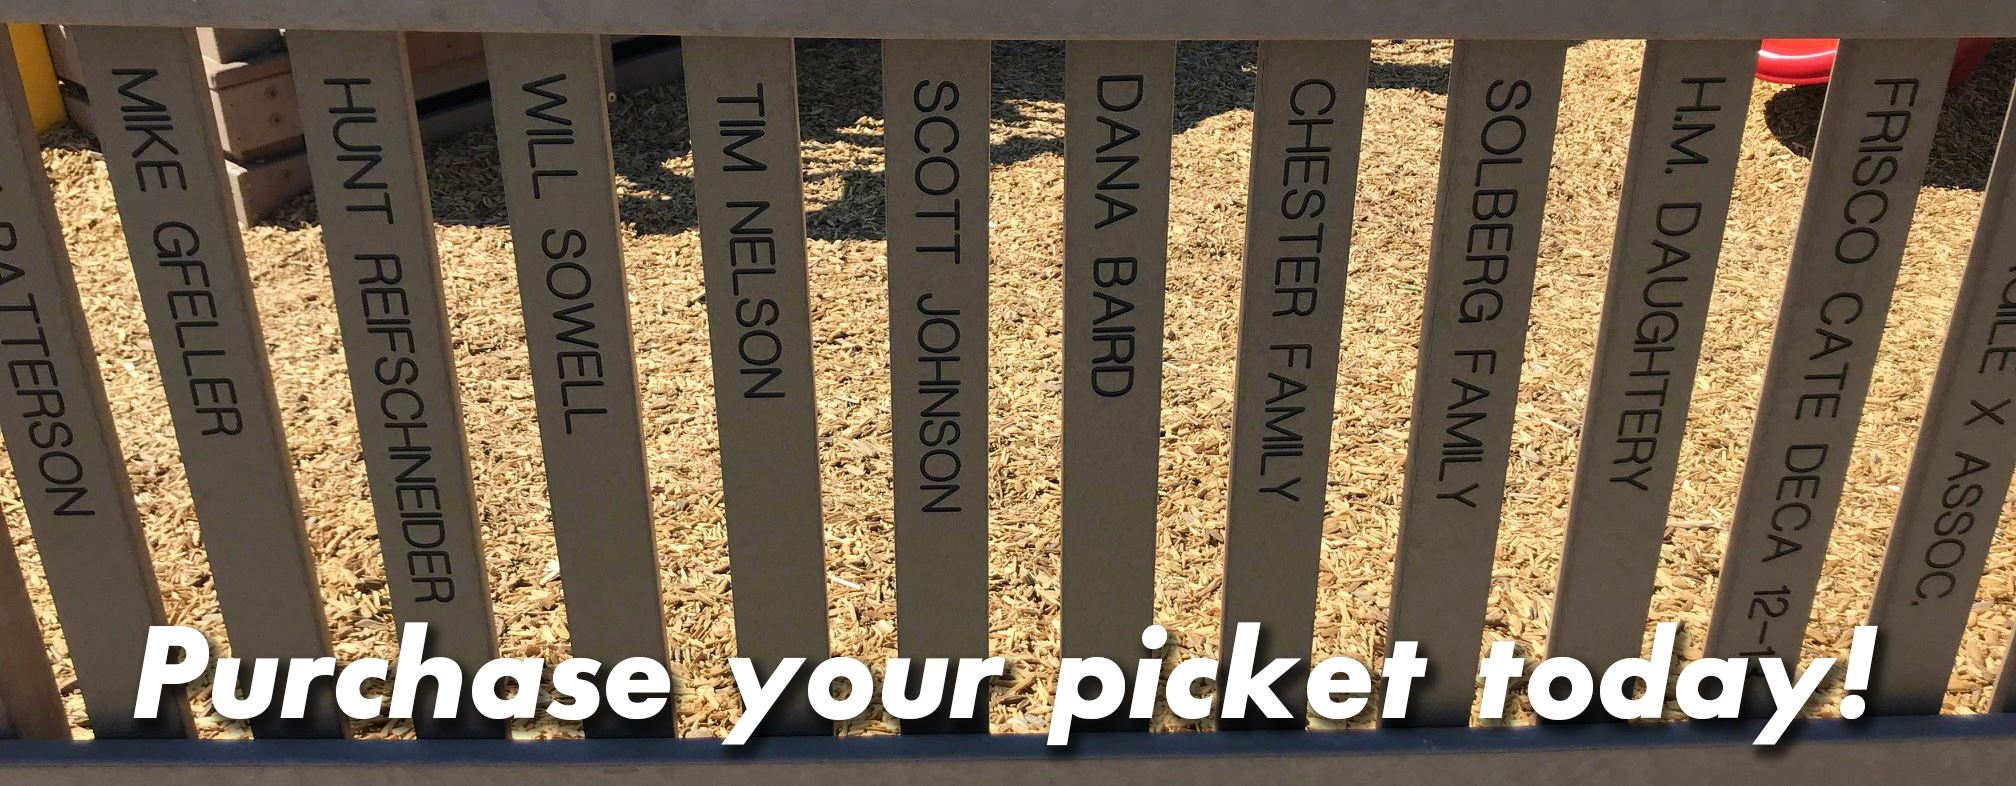 Purchase Your Picket Today